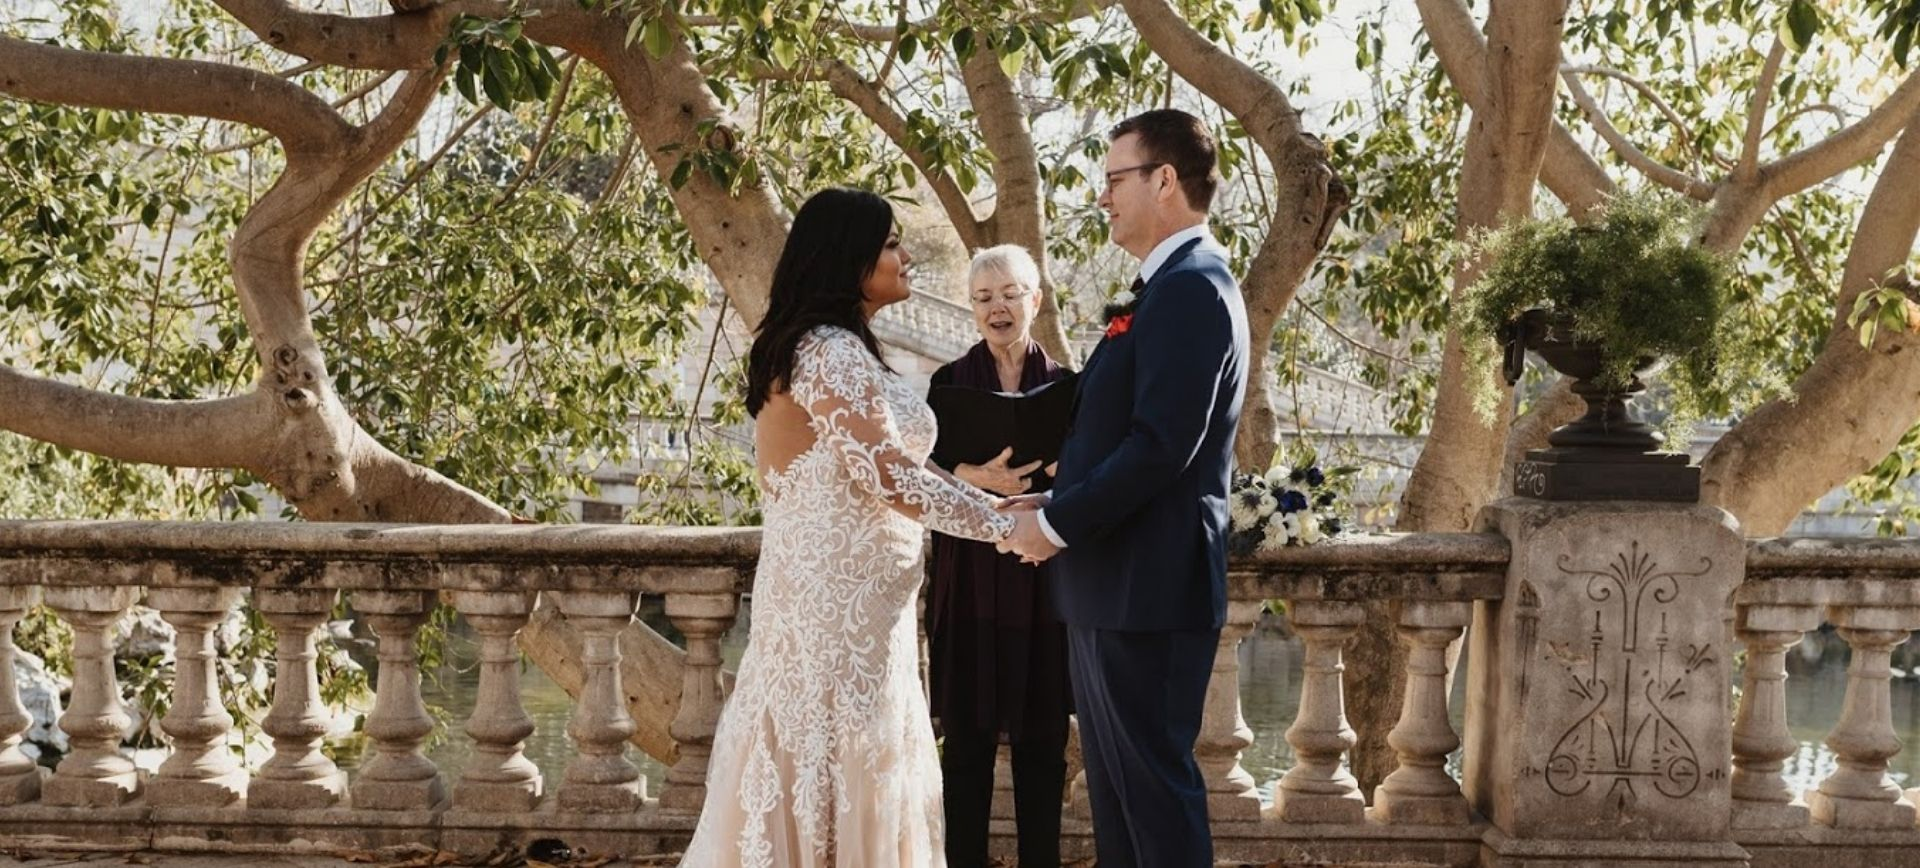 barcelona elopement wedding package - free ceremony in the park